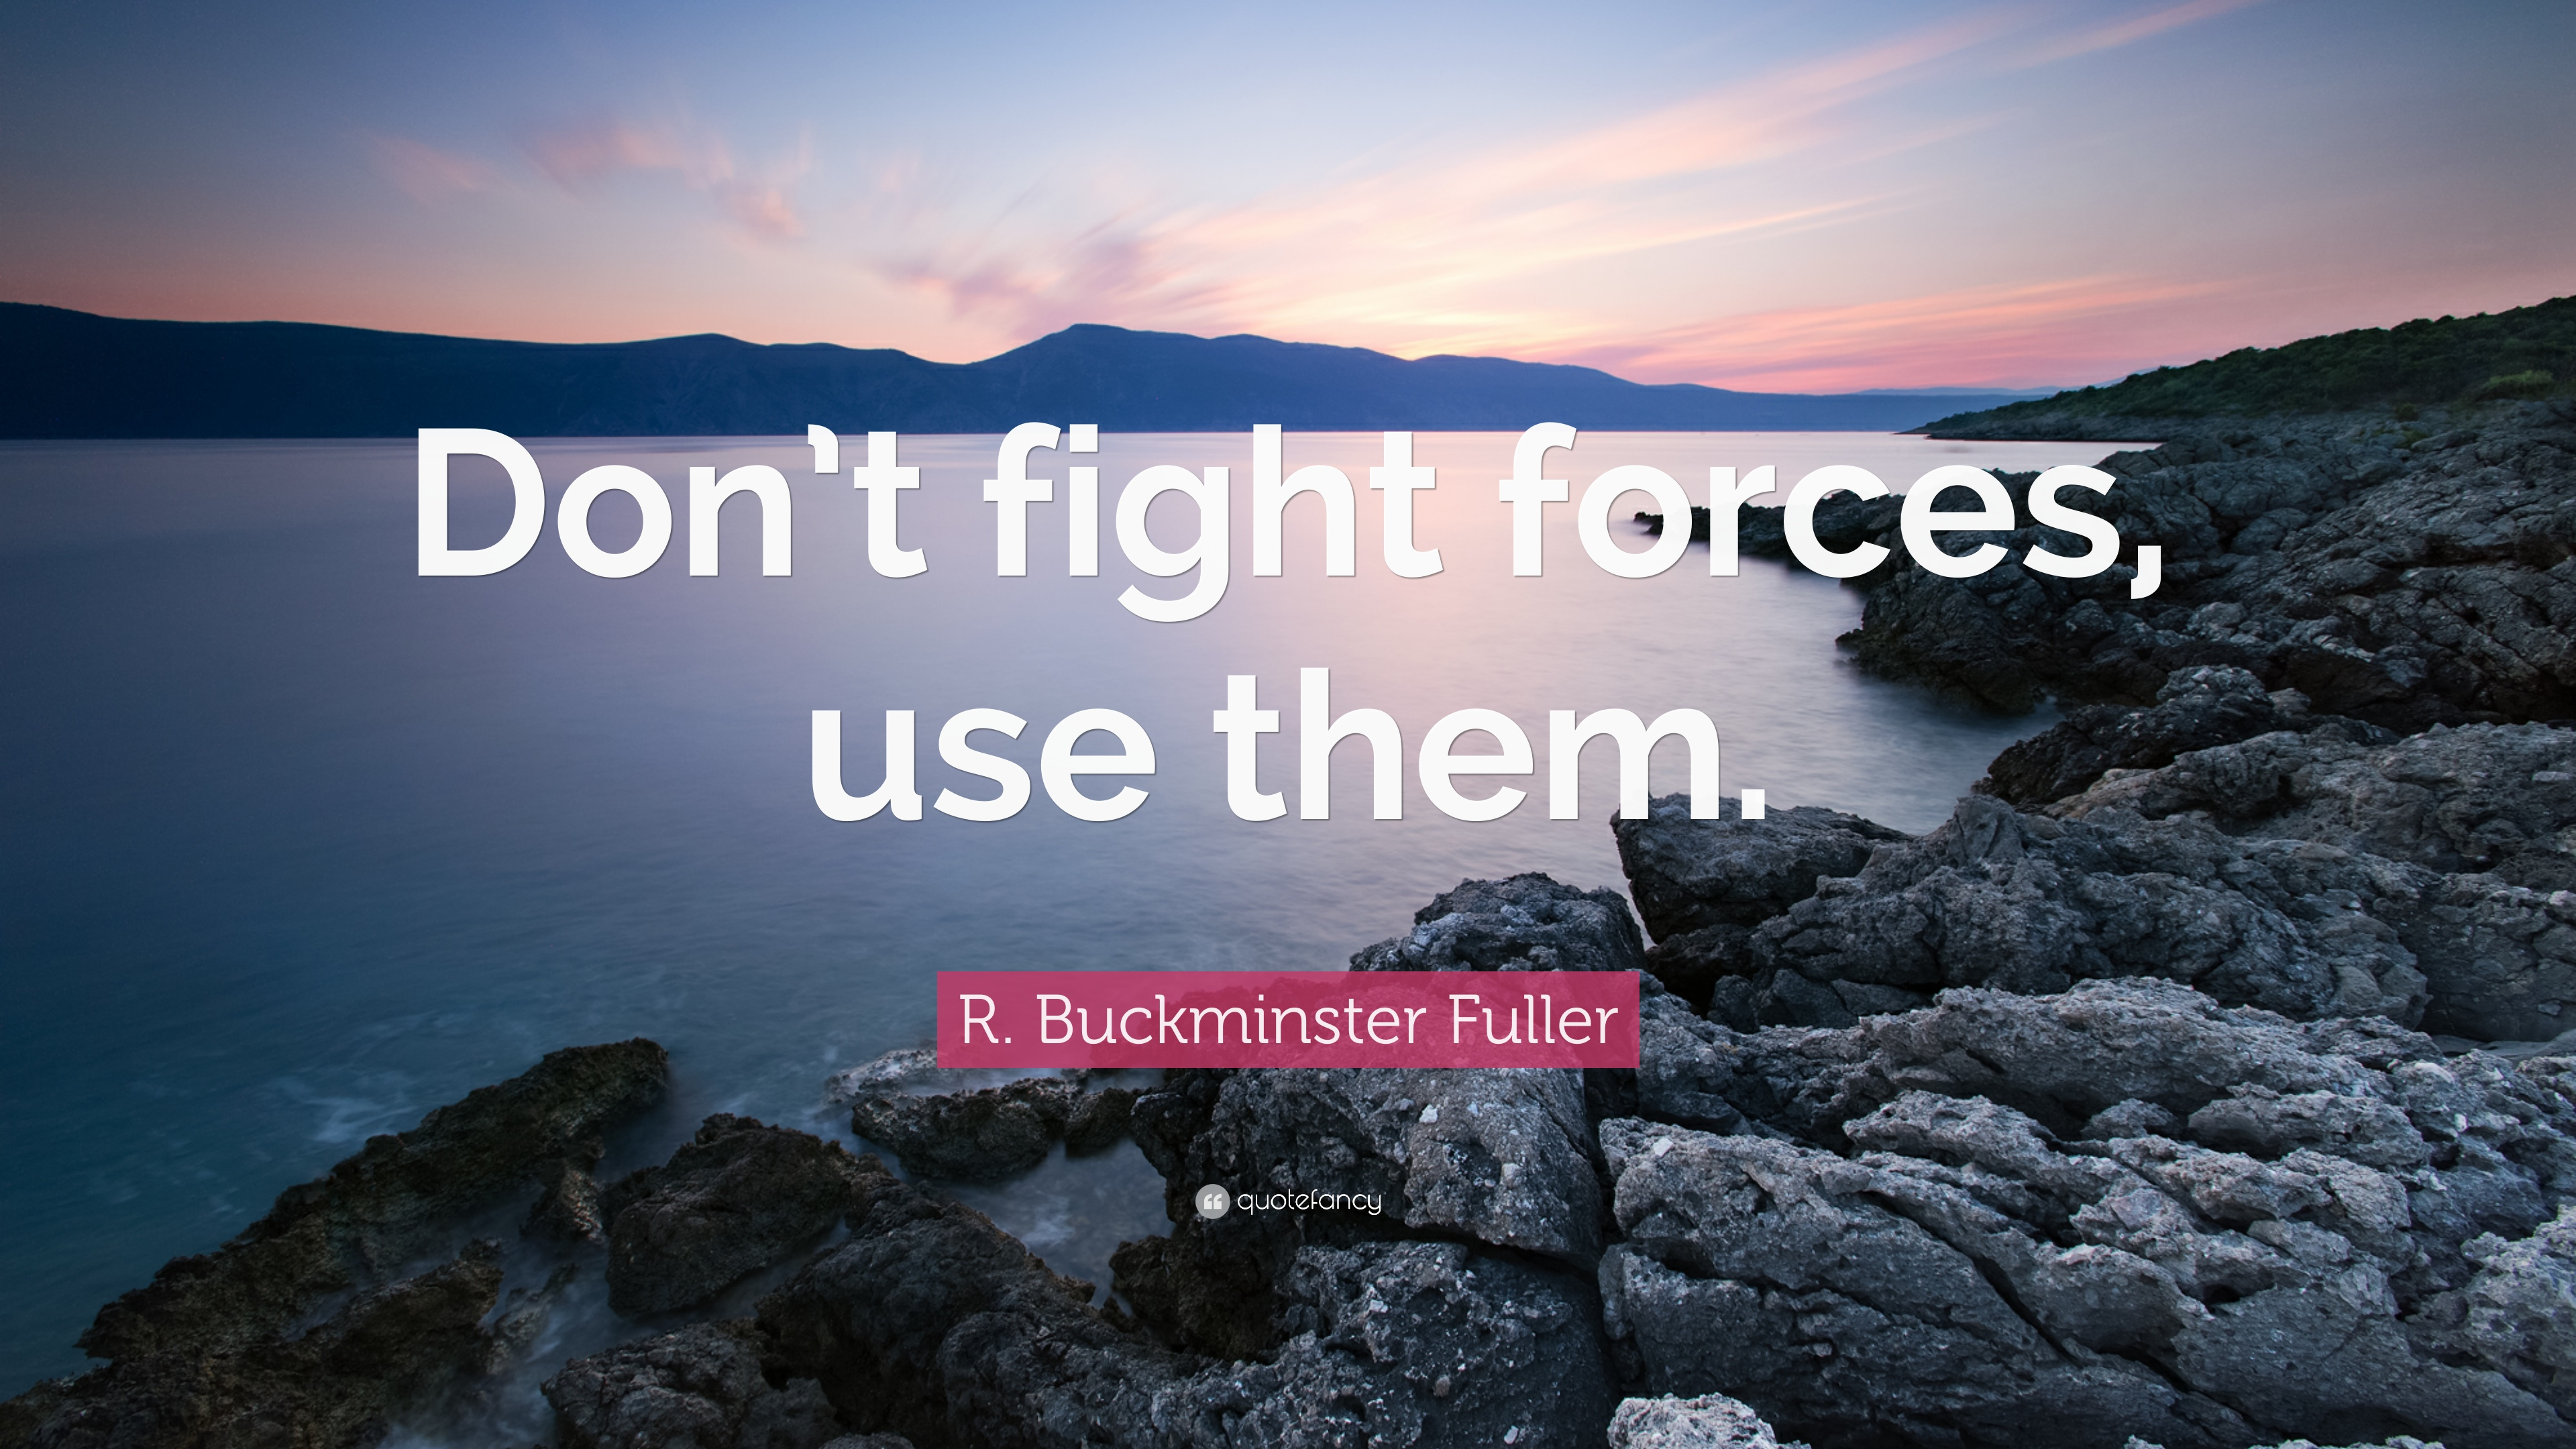 """R. Buckminster Fuller Quote: """"Don't fight forces, use them."""" (12  wallpapers) - Quotefancy"""